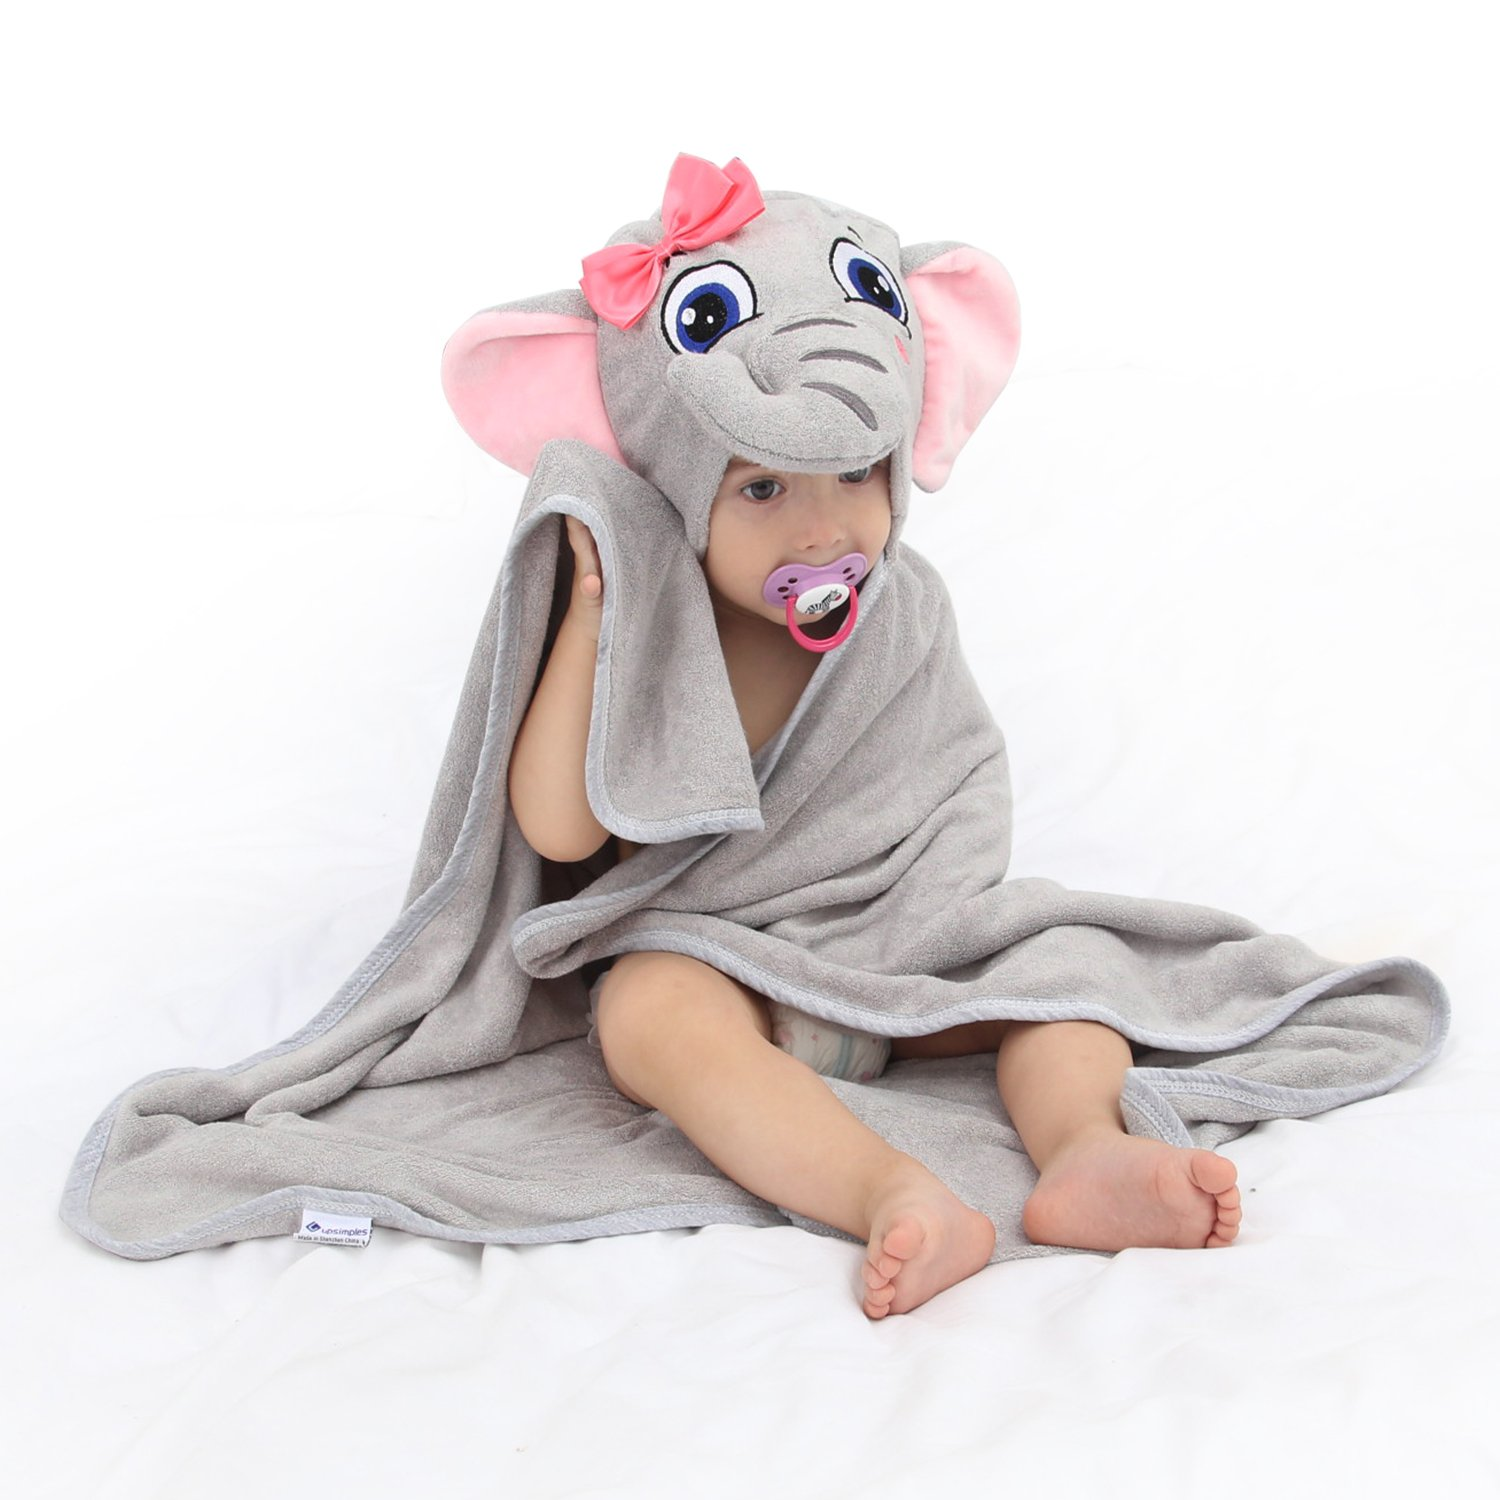 Baby Hooded Towel Upsimples Elephant Baby Towels for Baby Girls 35×35 Inches Ultra Large 500GSM Super Soft Organic Bamboo Baby Bath Towel for Infant Toddler   Baby Girl Shower Gift Photo Shoot Props CH-UP04002